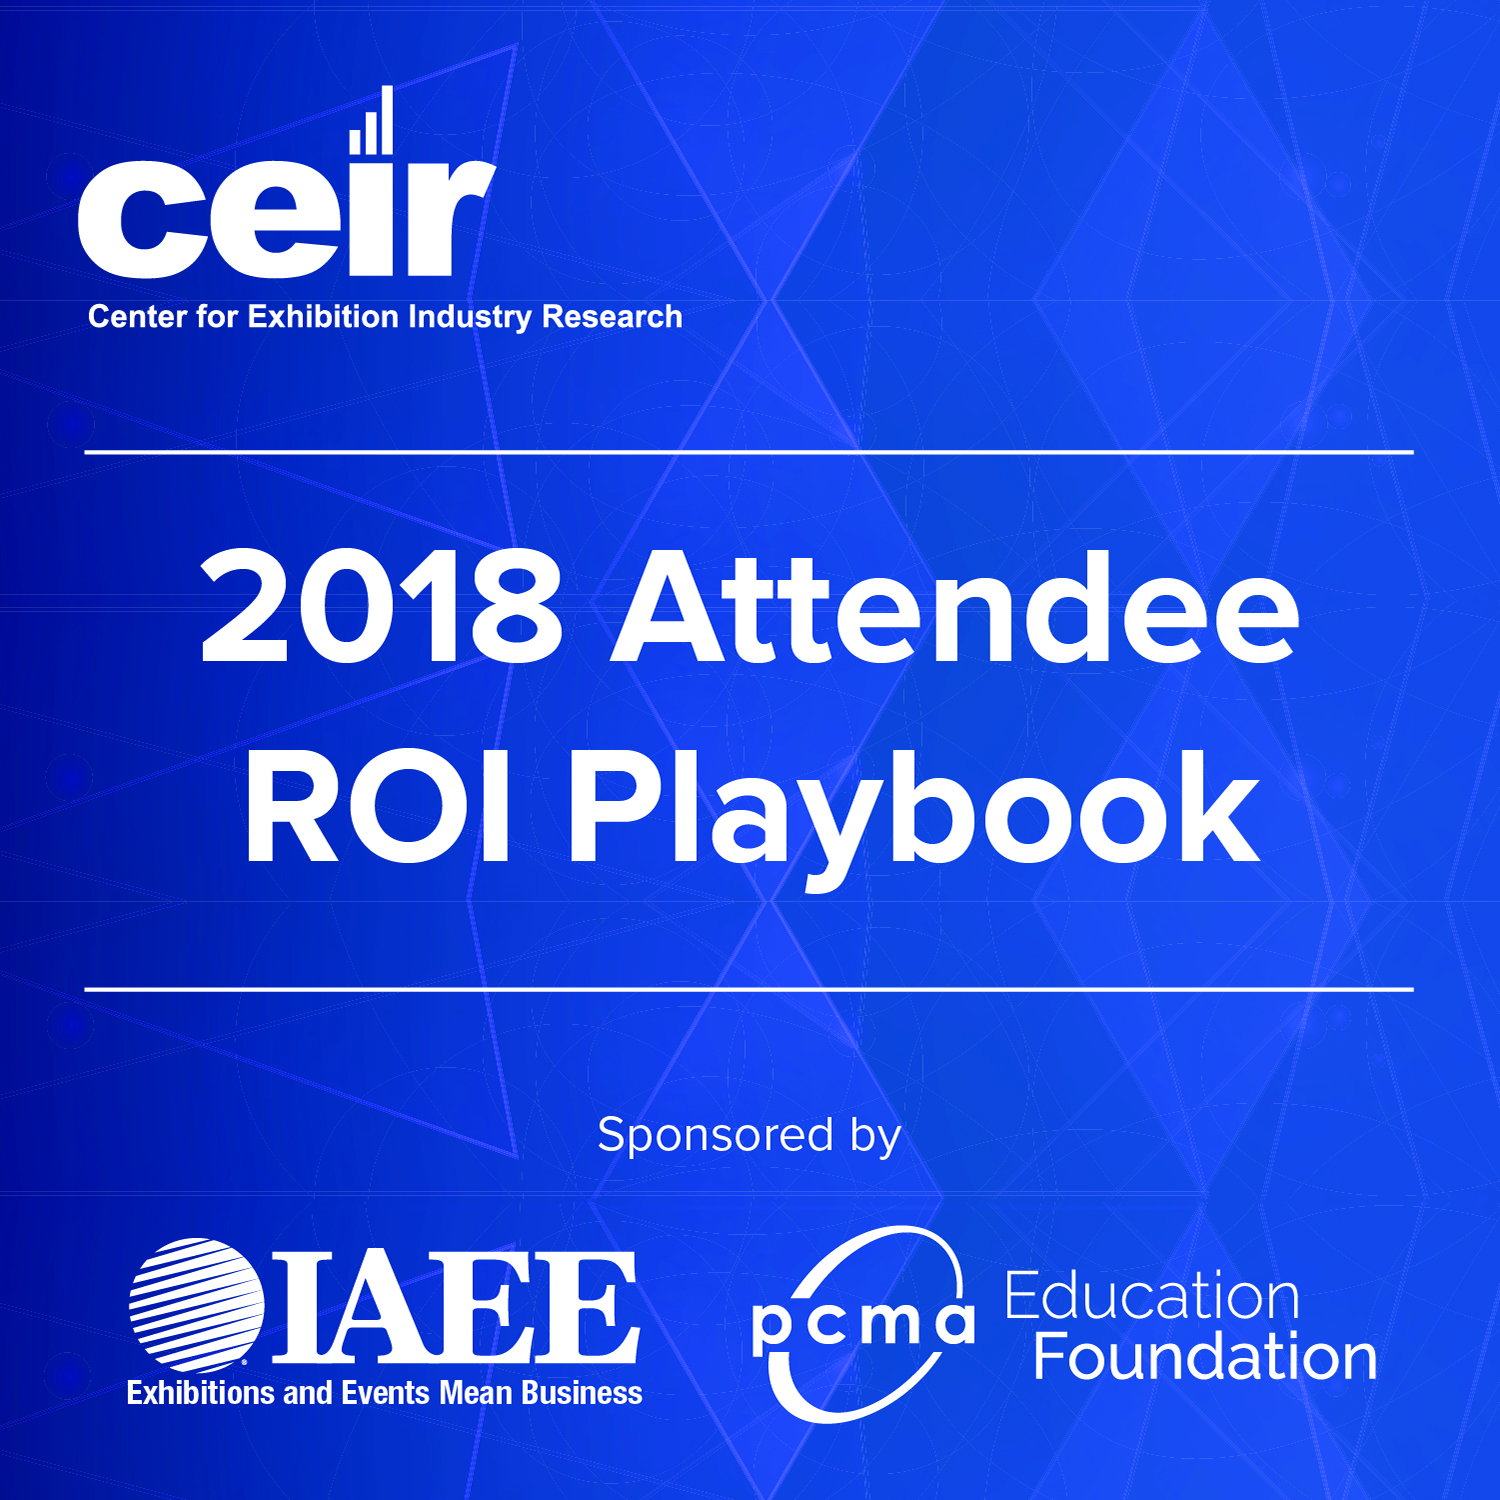 2018 Attendee ROI Playbook: Part 1